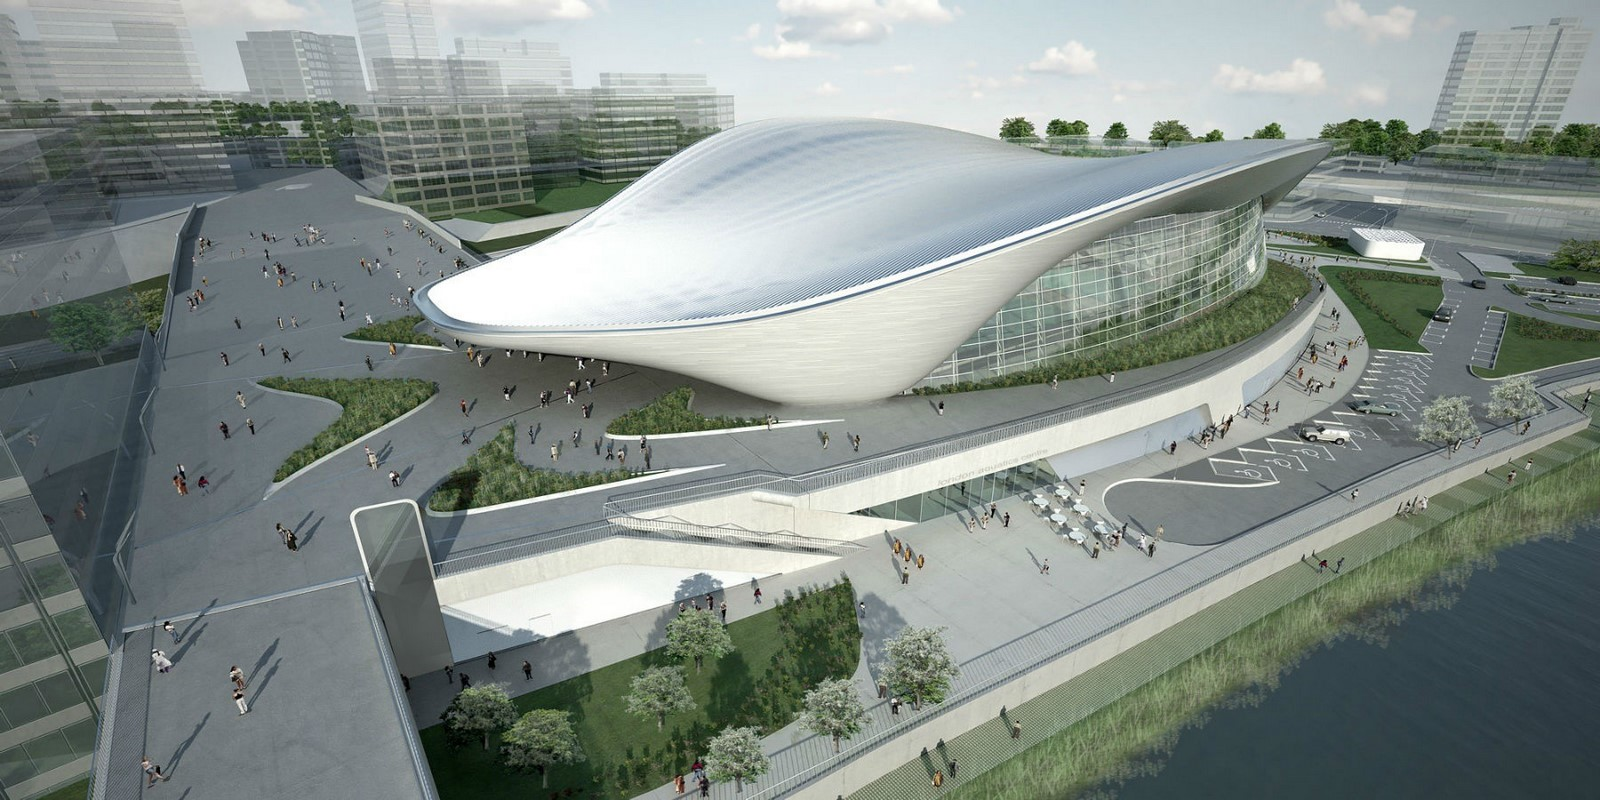 London Aquatics Centre by Zaha Hadid Architects- Architecture inspired by water - Sheet5